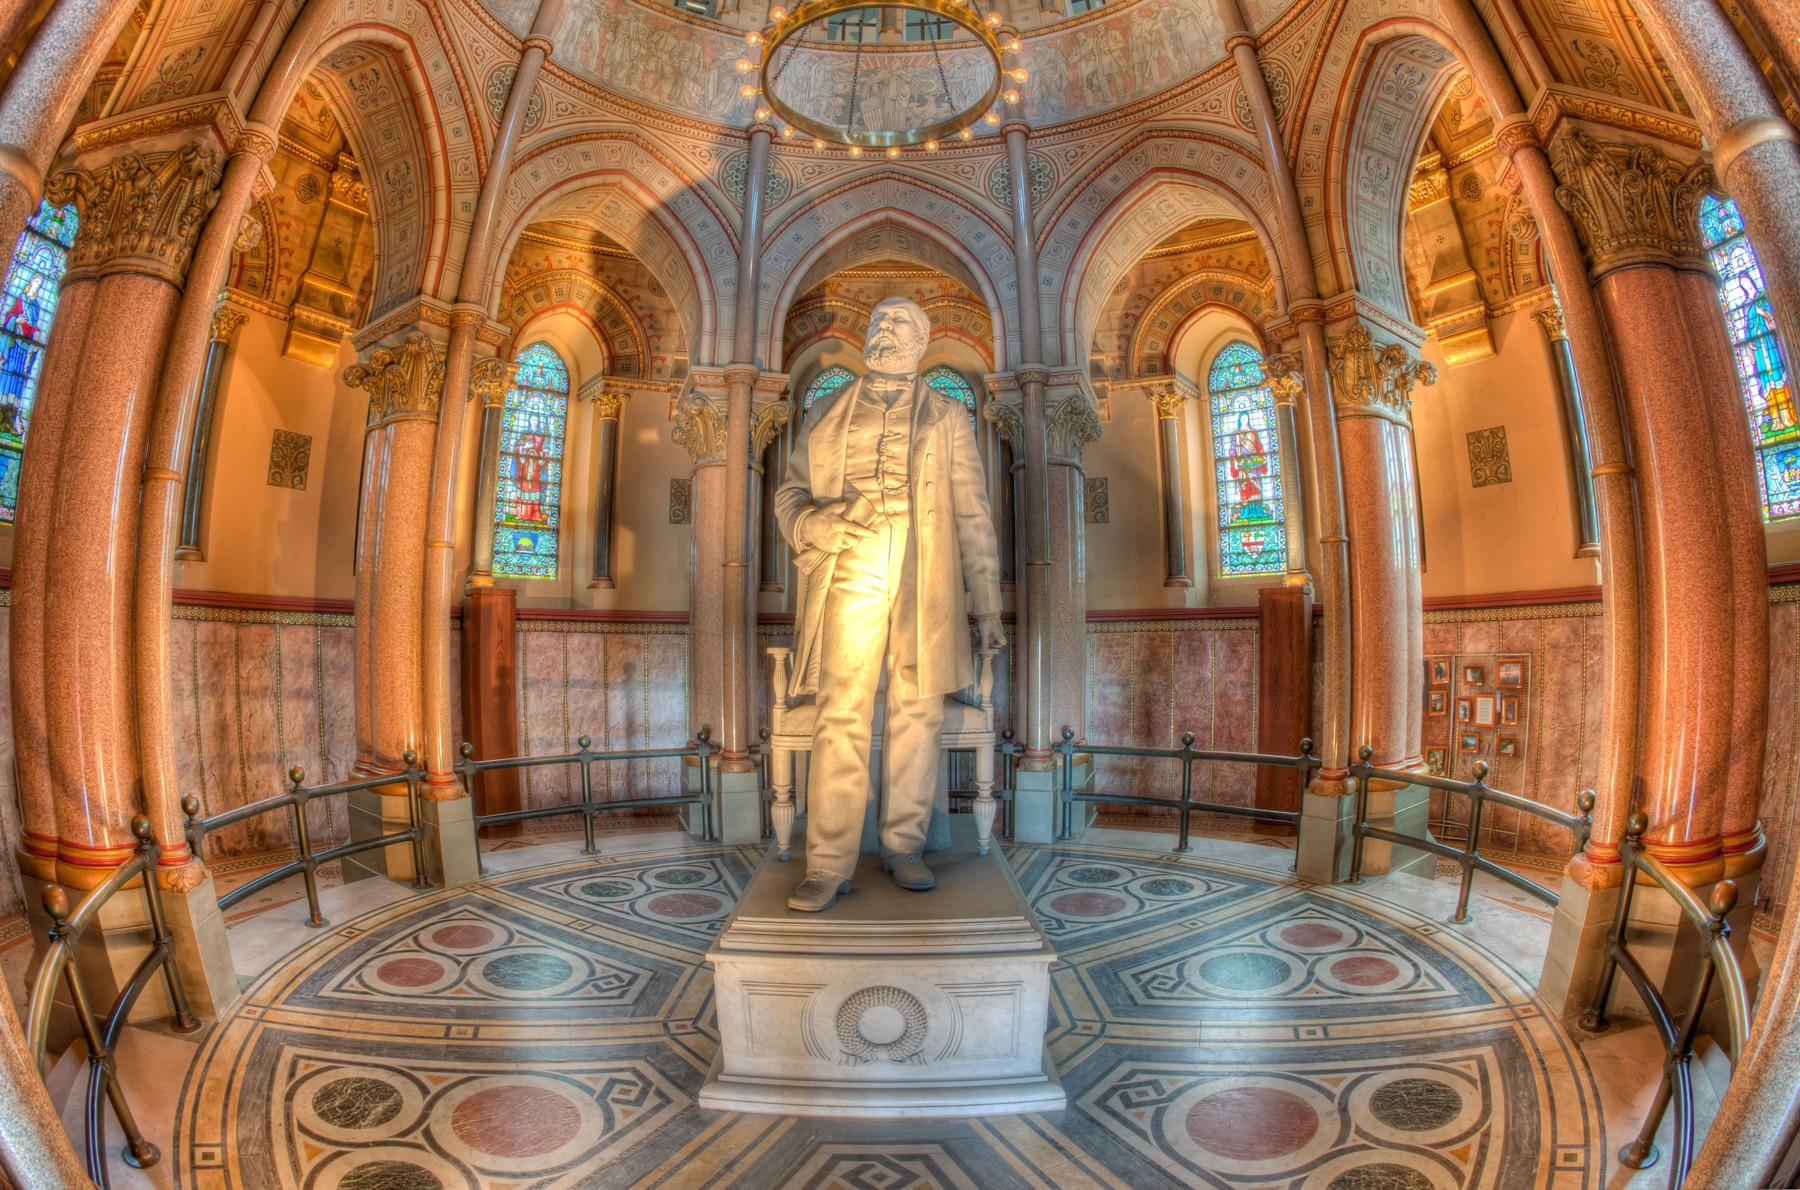 Statue of James Garfield in ornate hall (© Clarence Holmes Photography/Alamy)